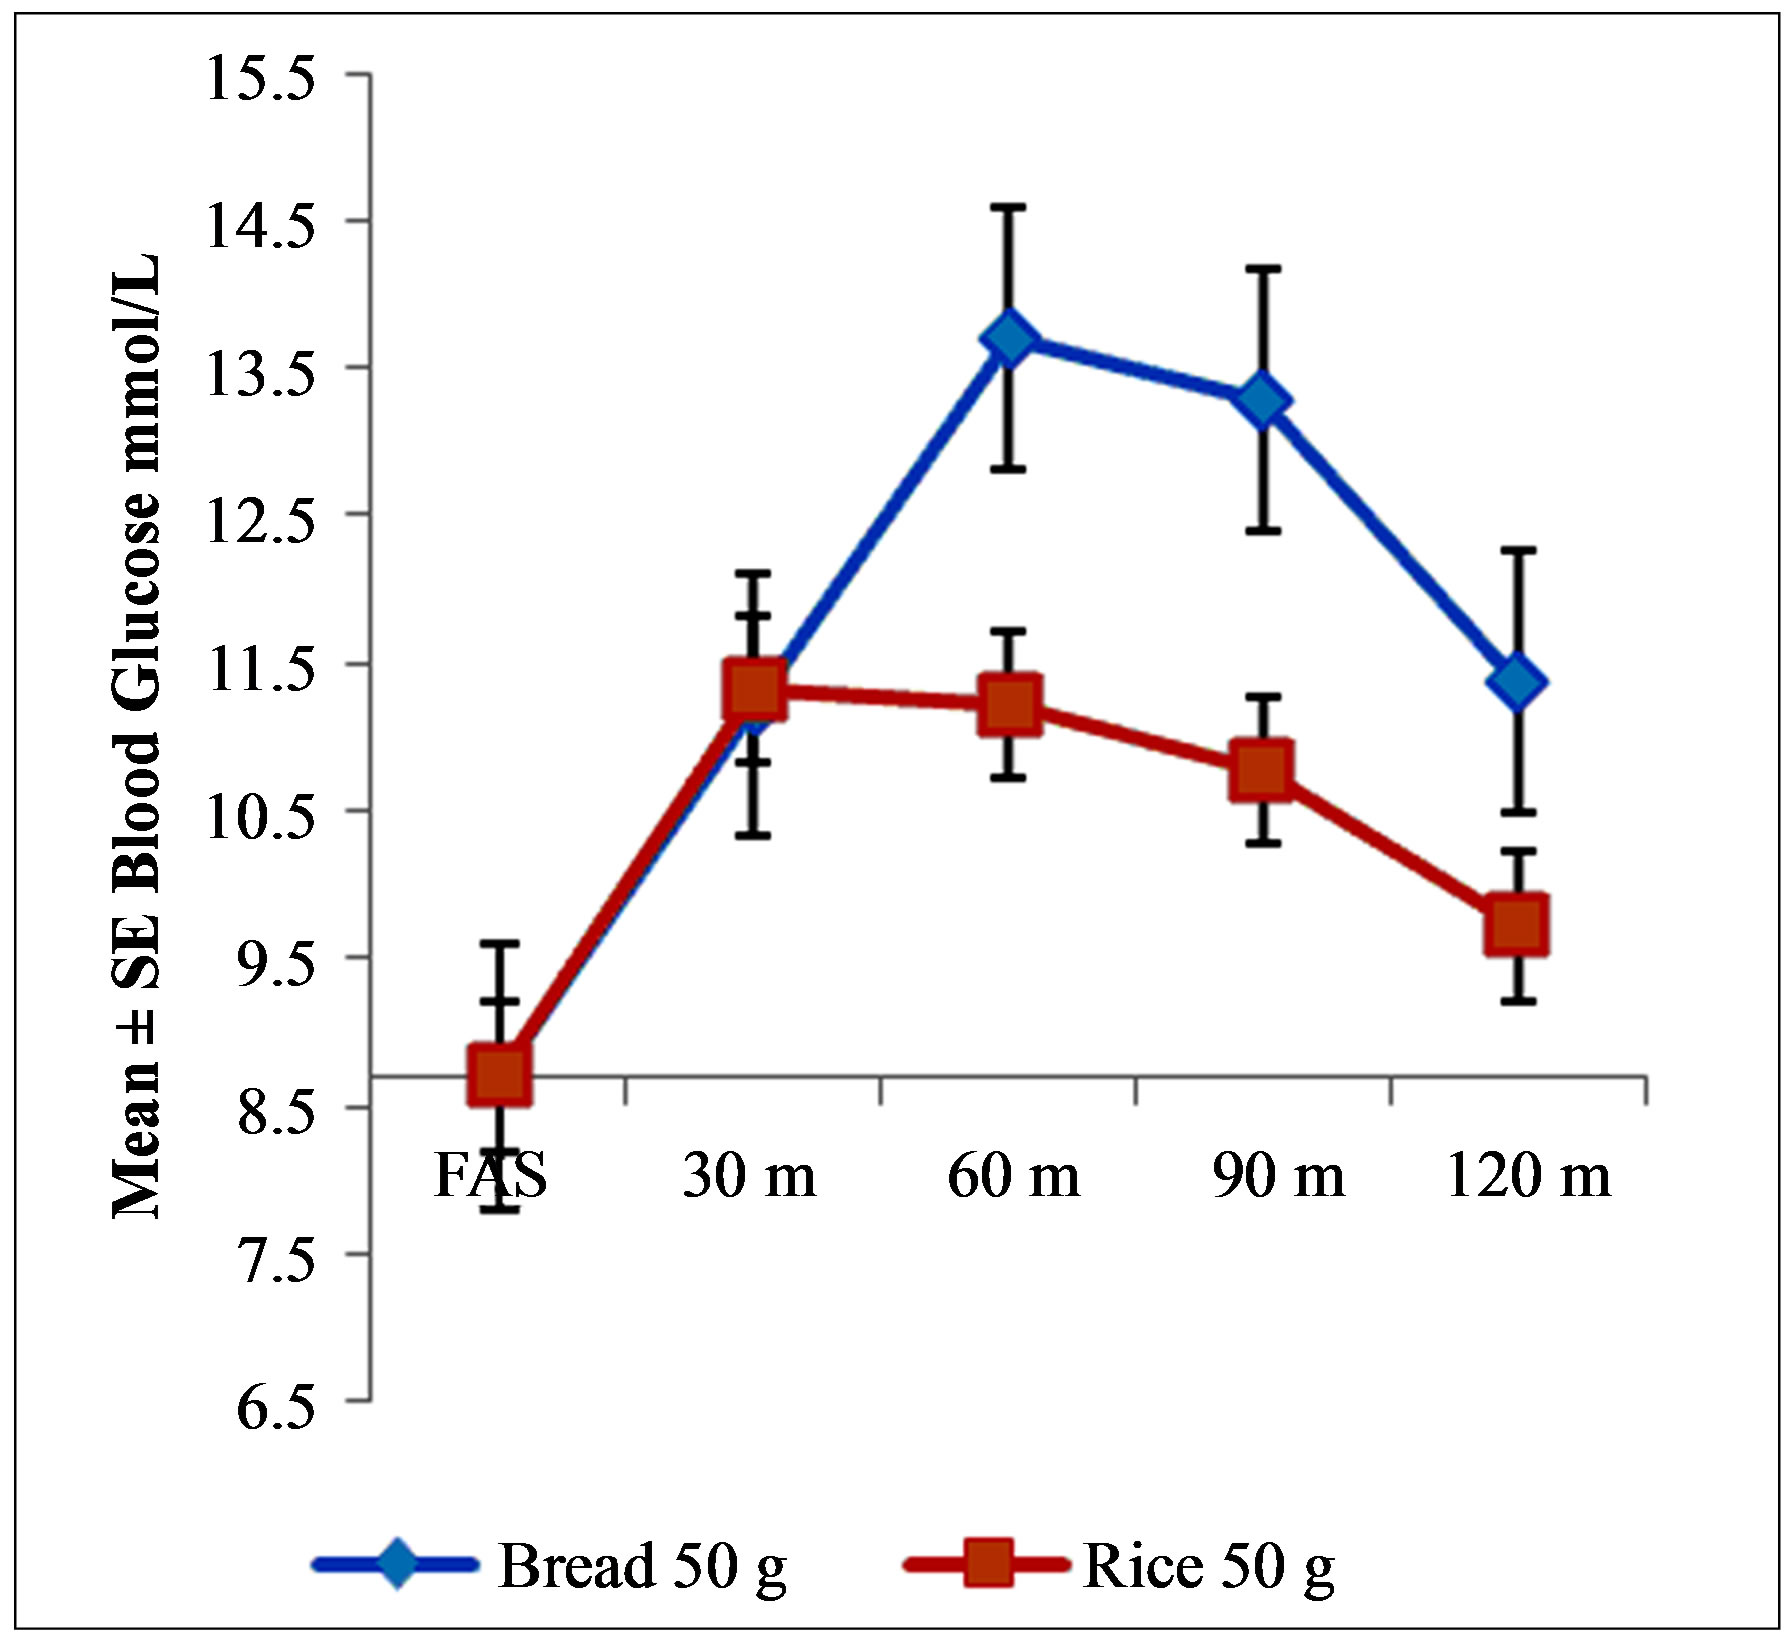 Equi-Quantity, Equi-Calorie and Dose of Rice on Relative